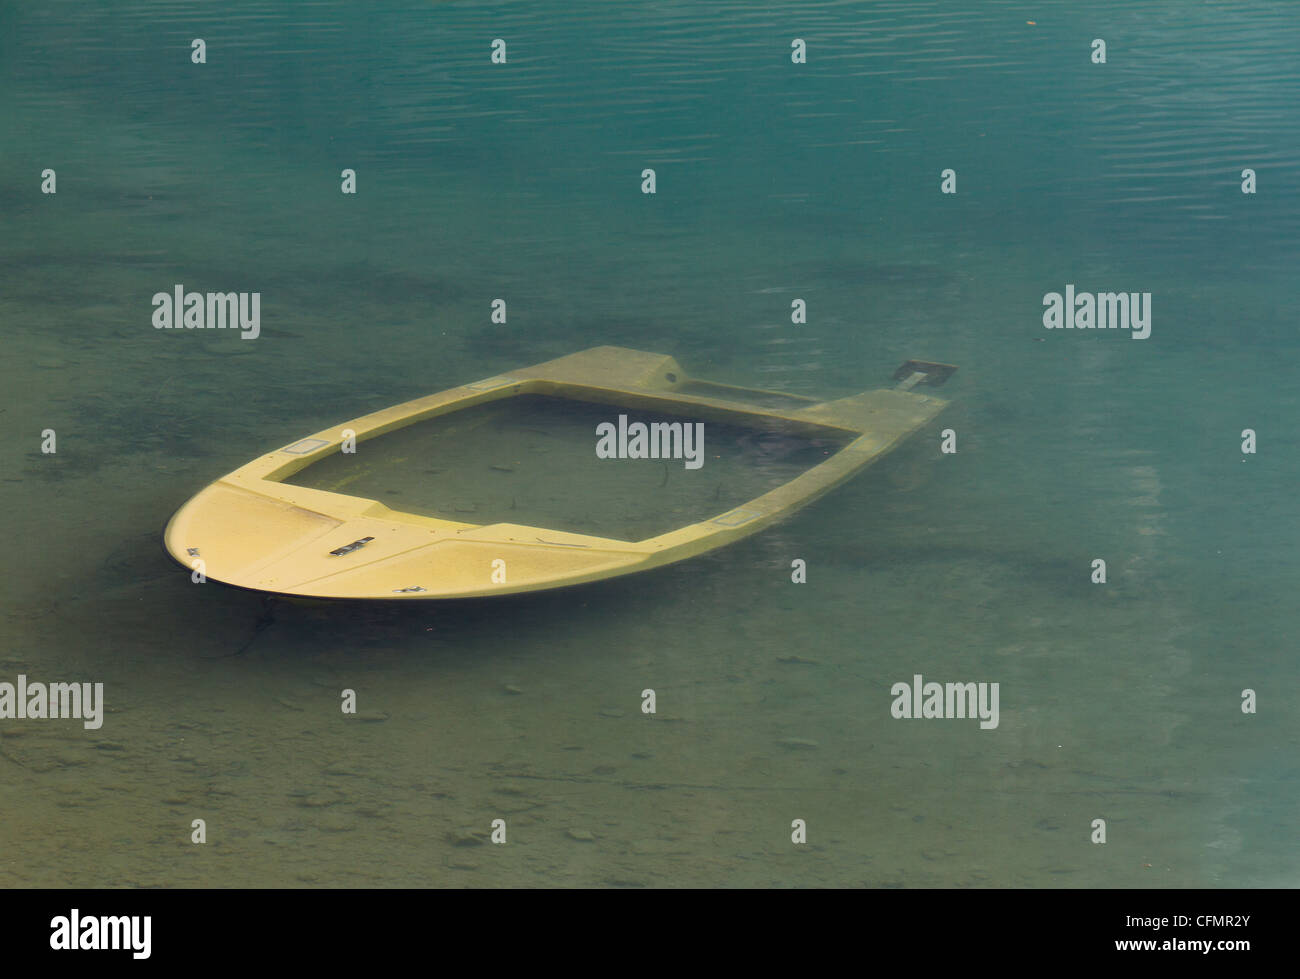 Sunk boat in the river - Stock Image